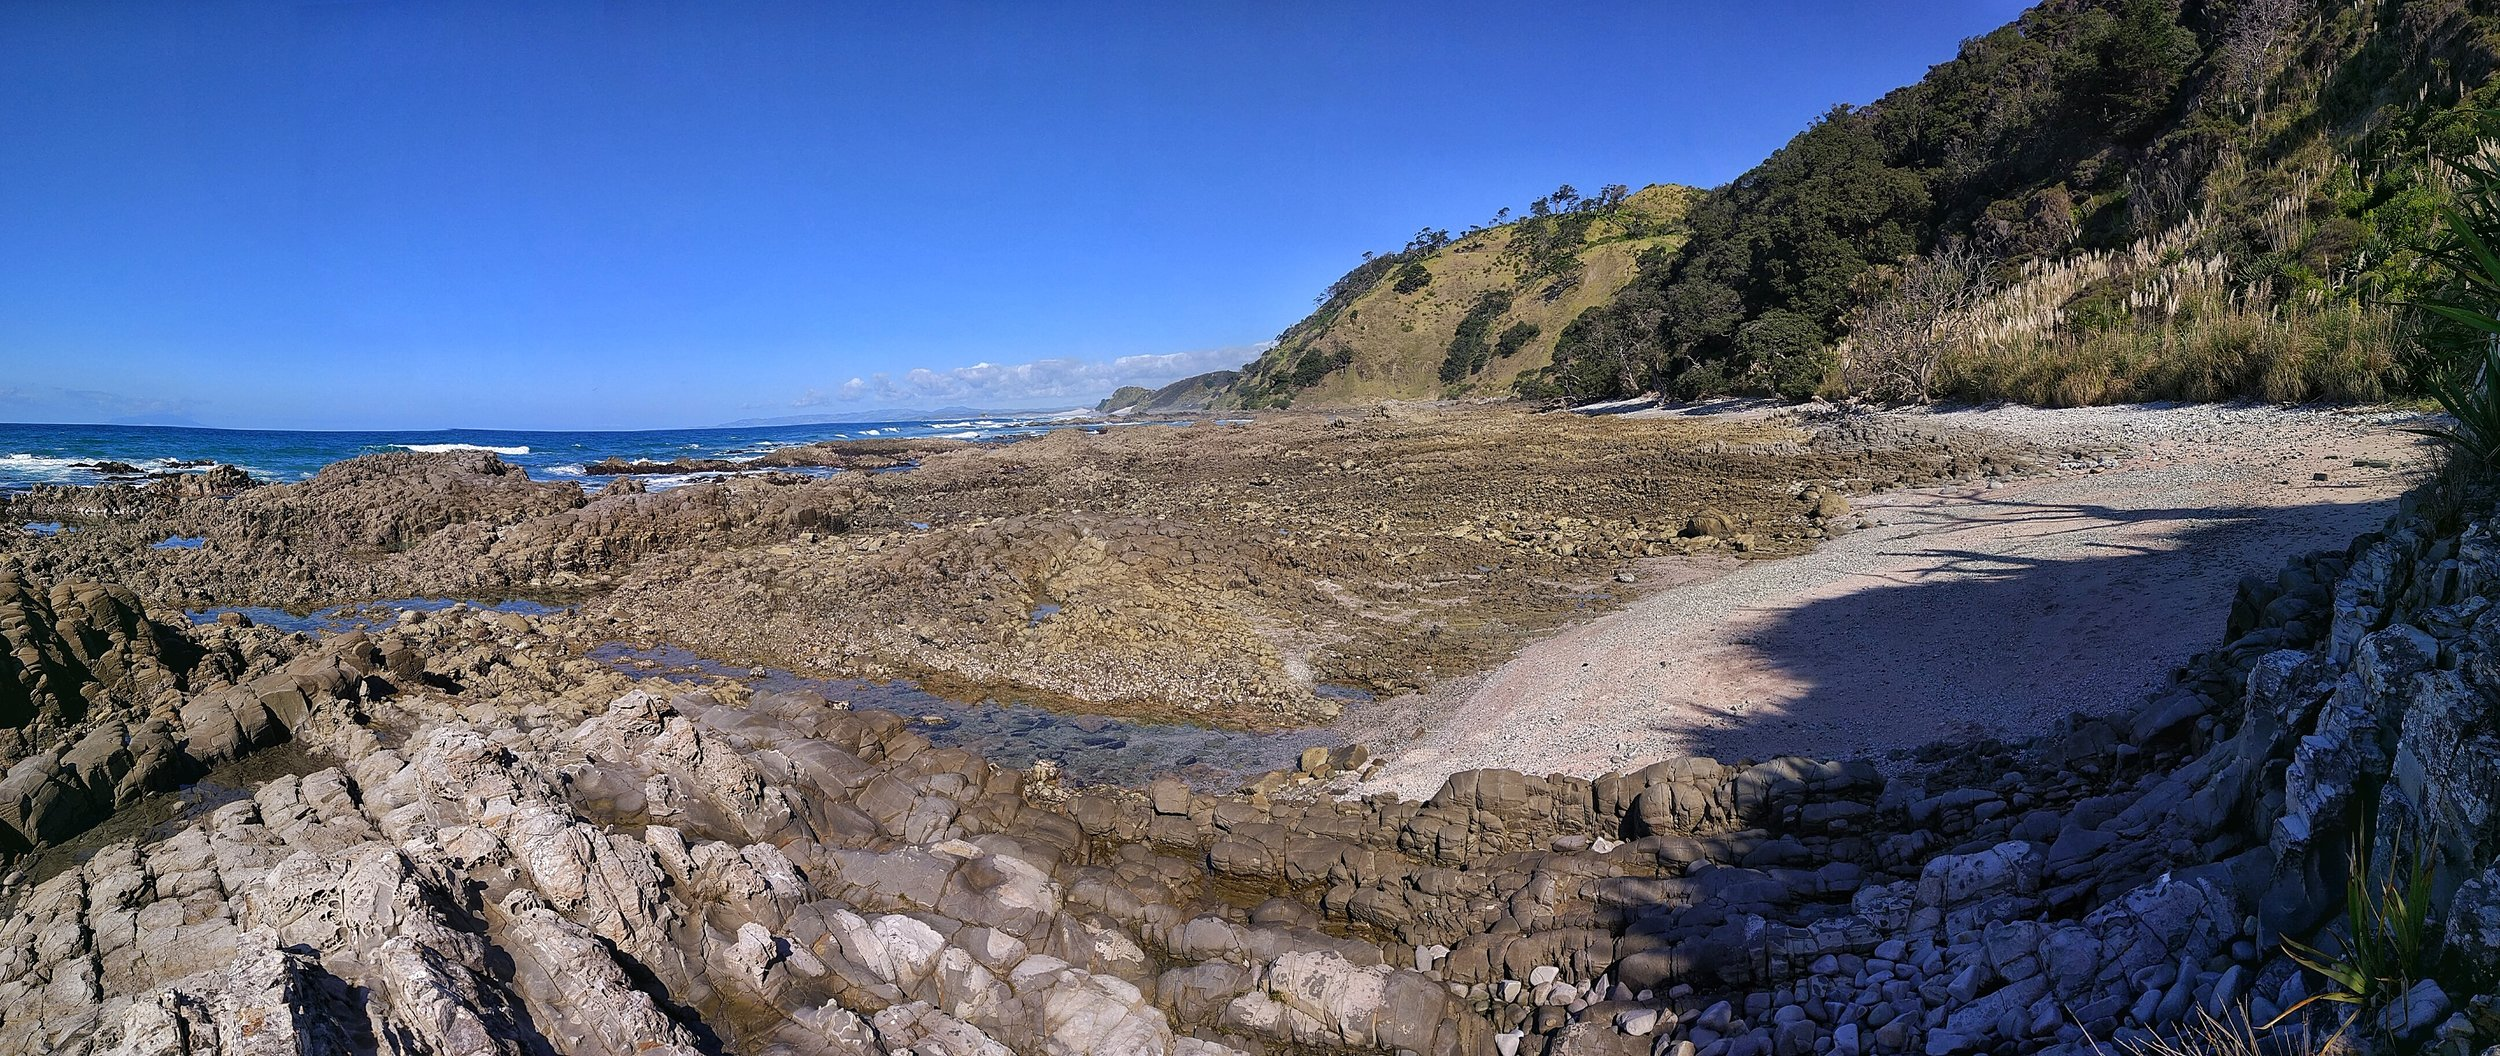 Walking on rocky terrain on the water level part of Mangawhai Walkway